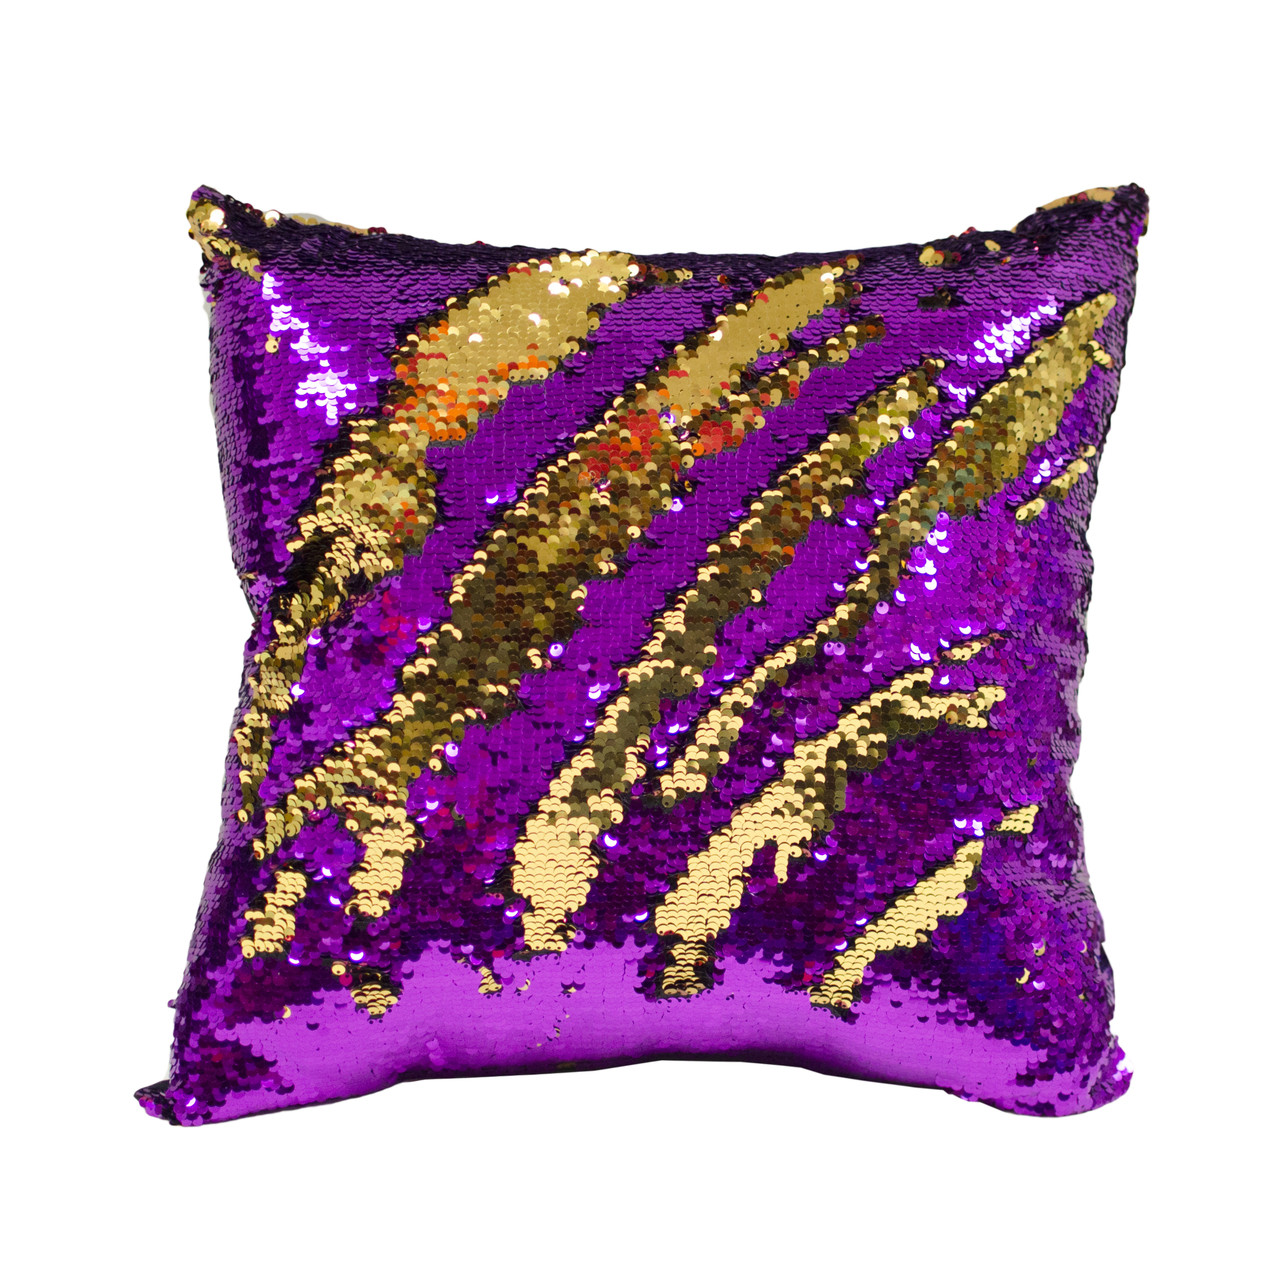 manor home image sequin hello smashing pillow simply decor products gold pillows